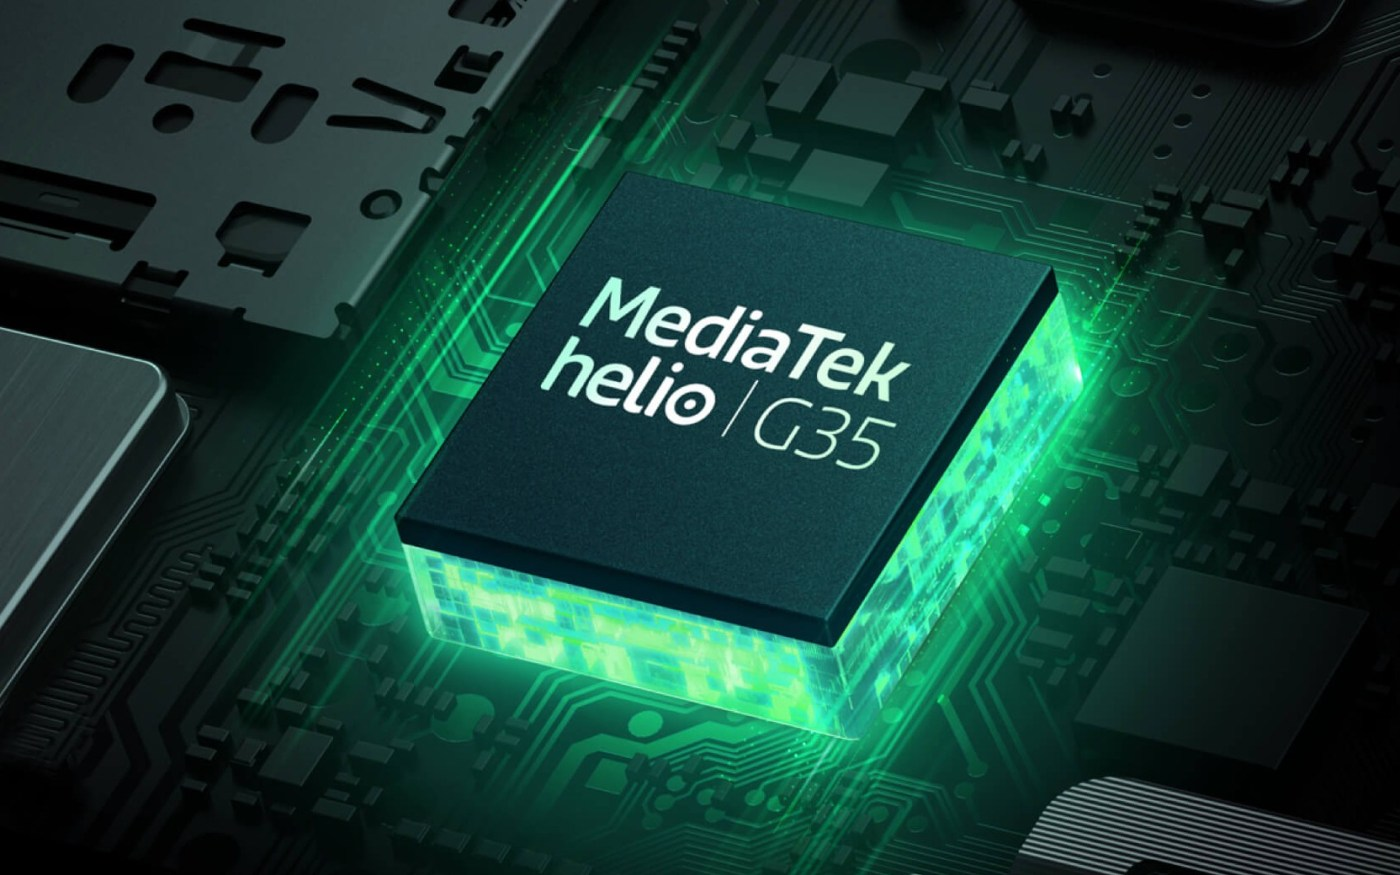 mediatek helio g35 g25 announced